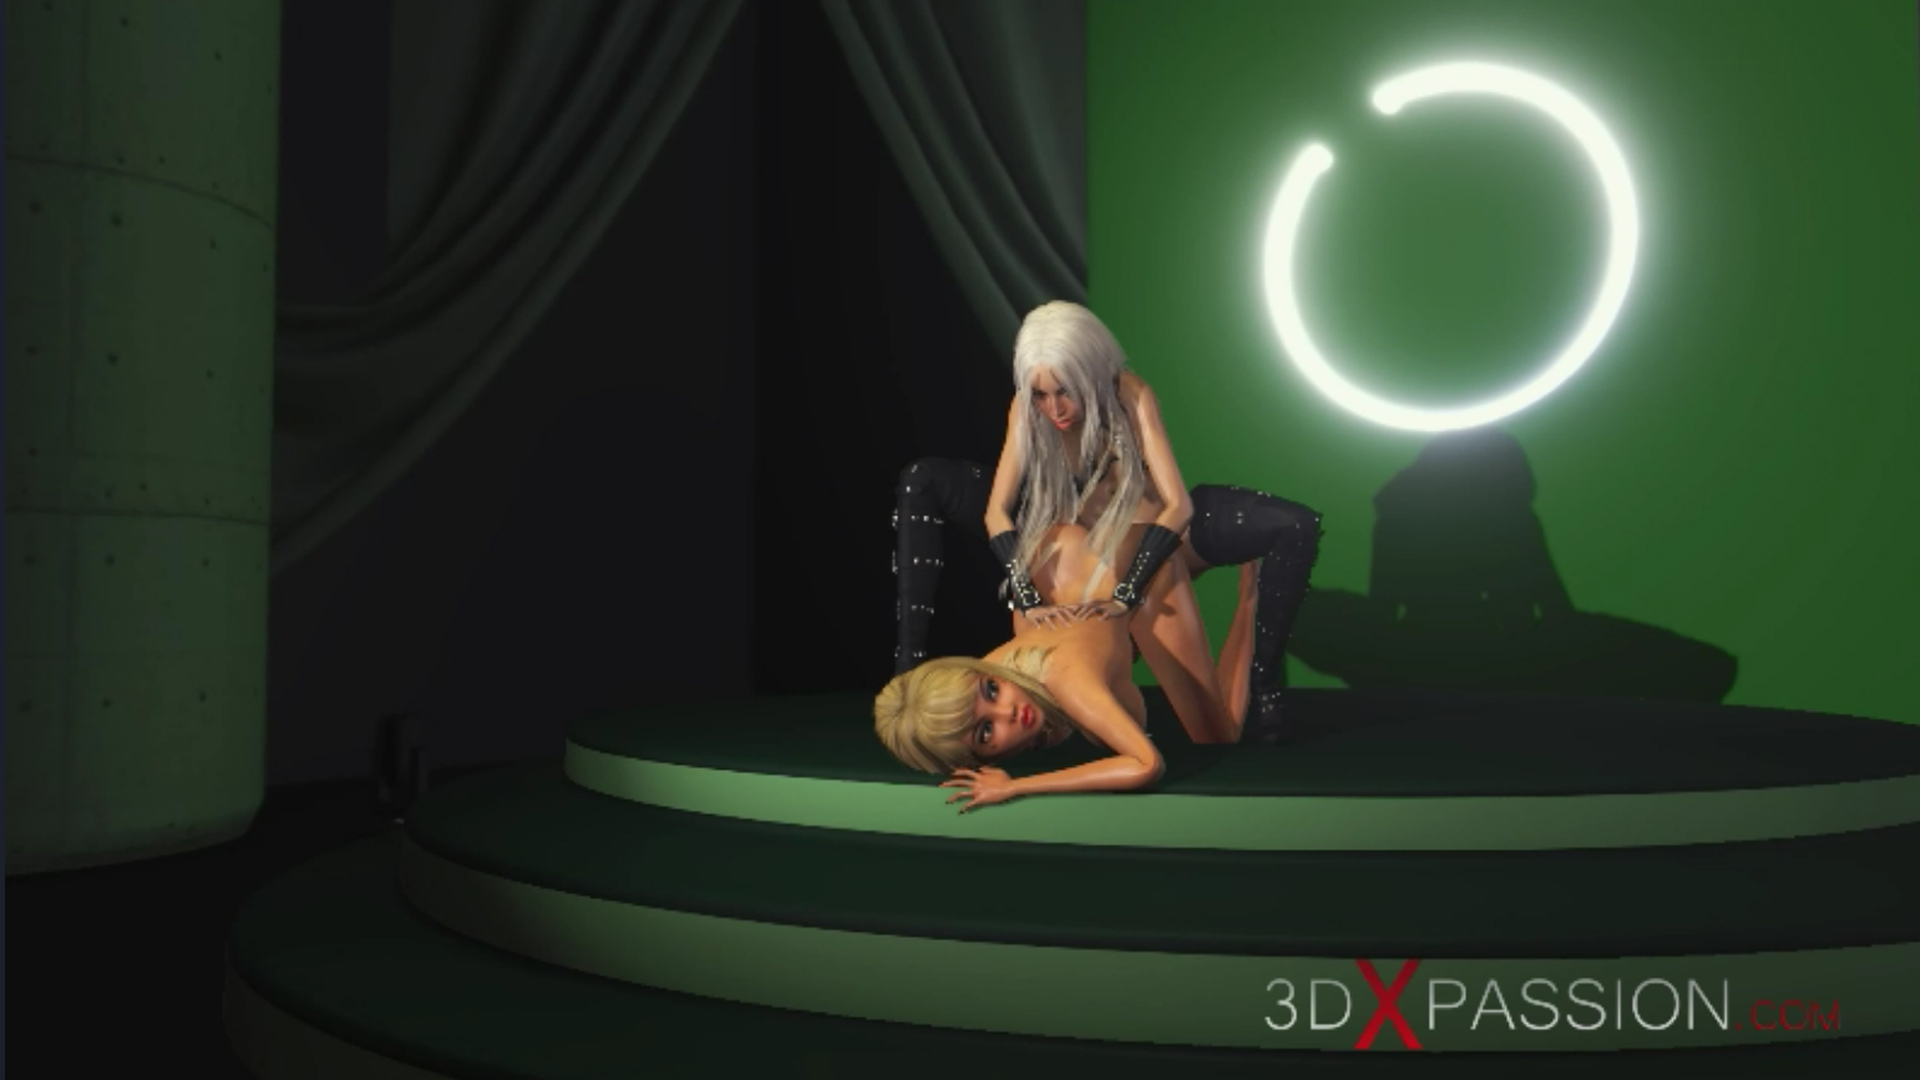 horny blonde girlfriend ass fuck 3d shemale fashion model podium